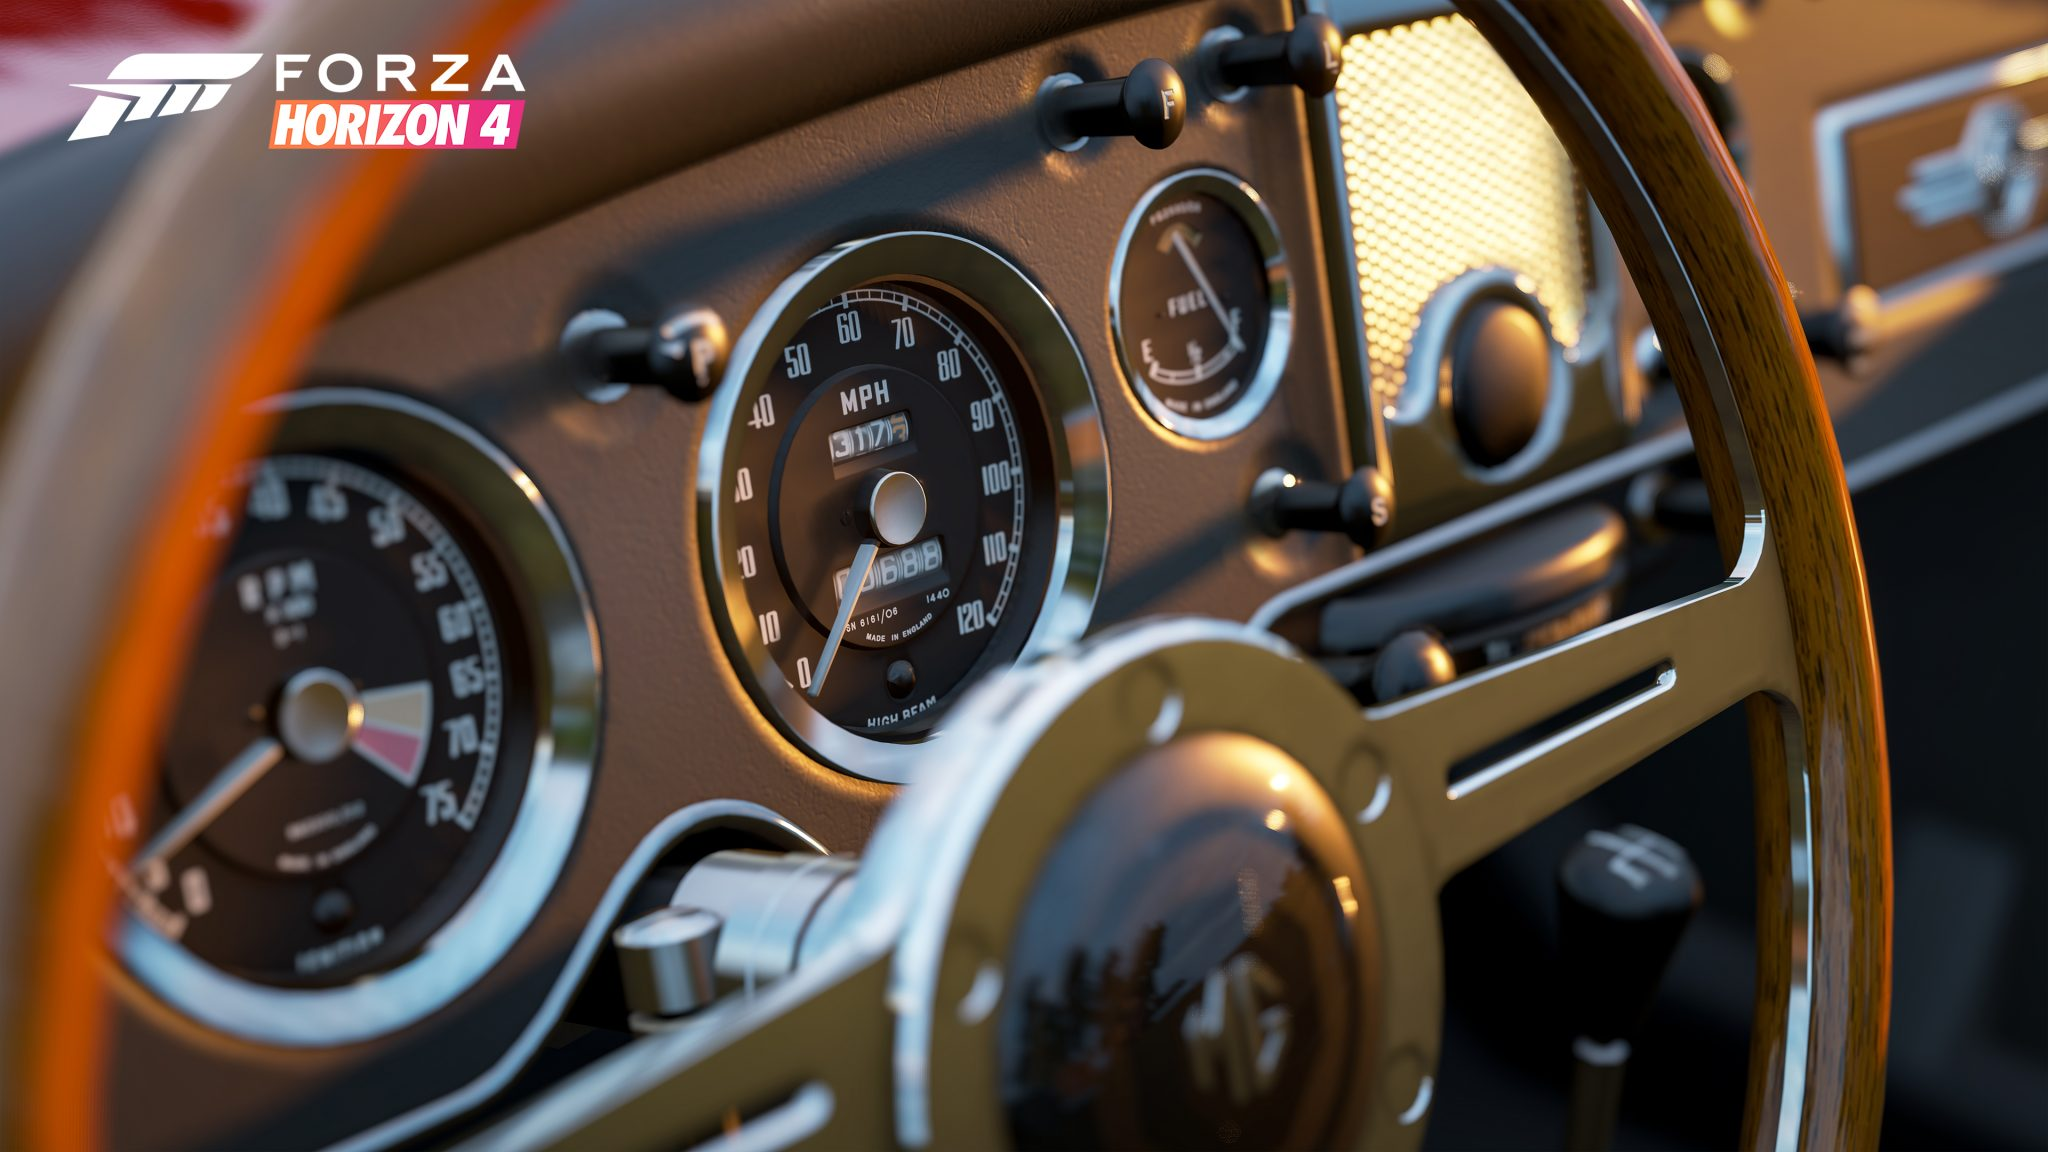 Forza Horizon 4 FH4 Xbox One X PC Ultimate Review Test Kritik Steuer